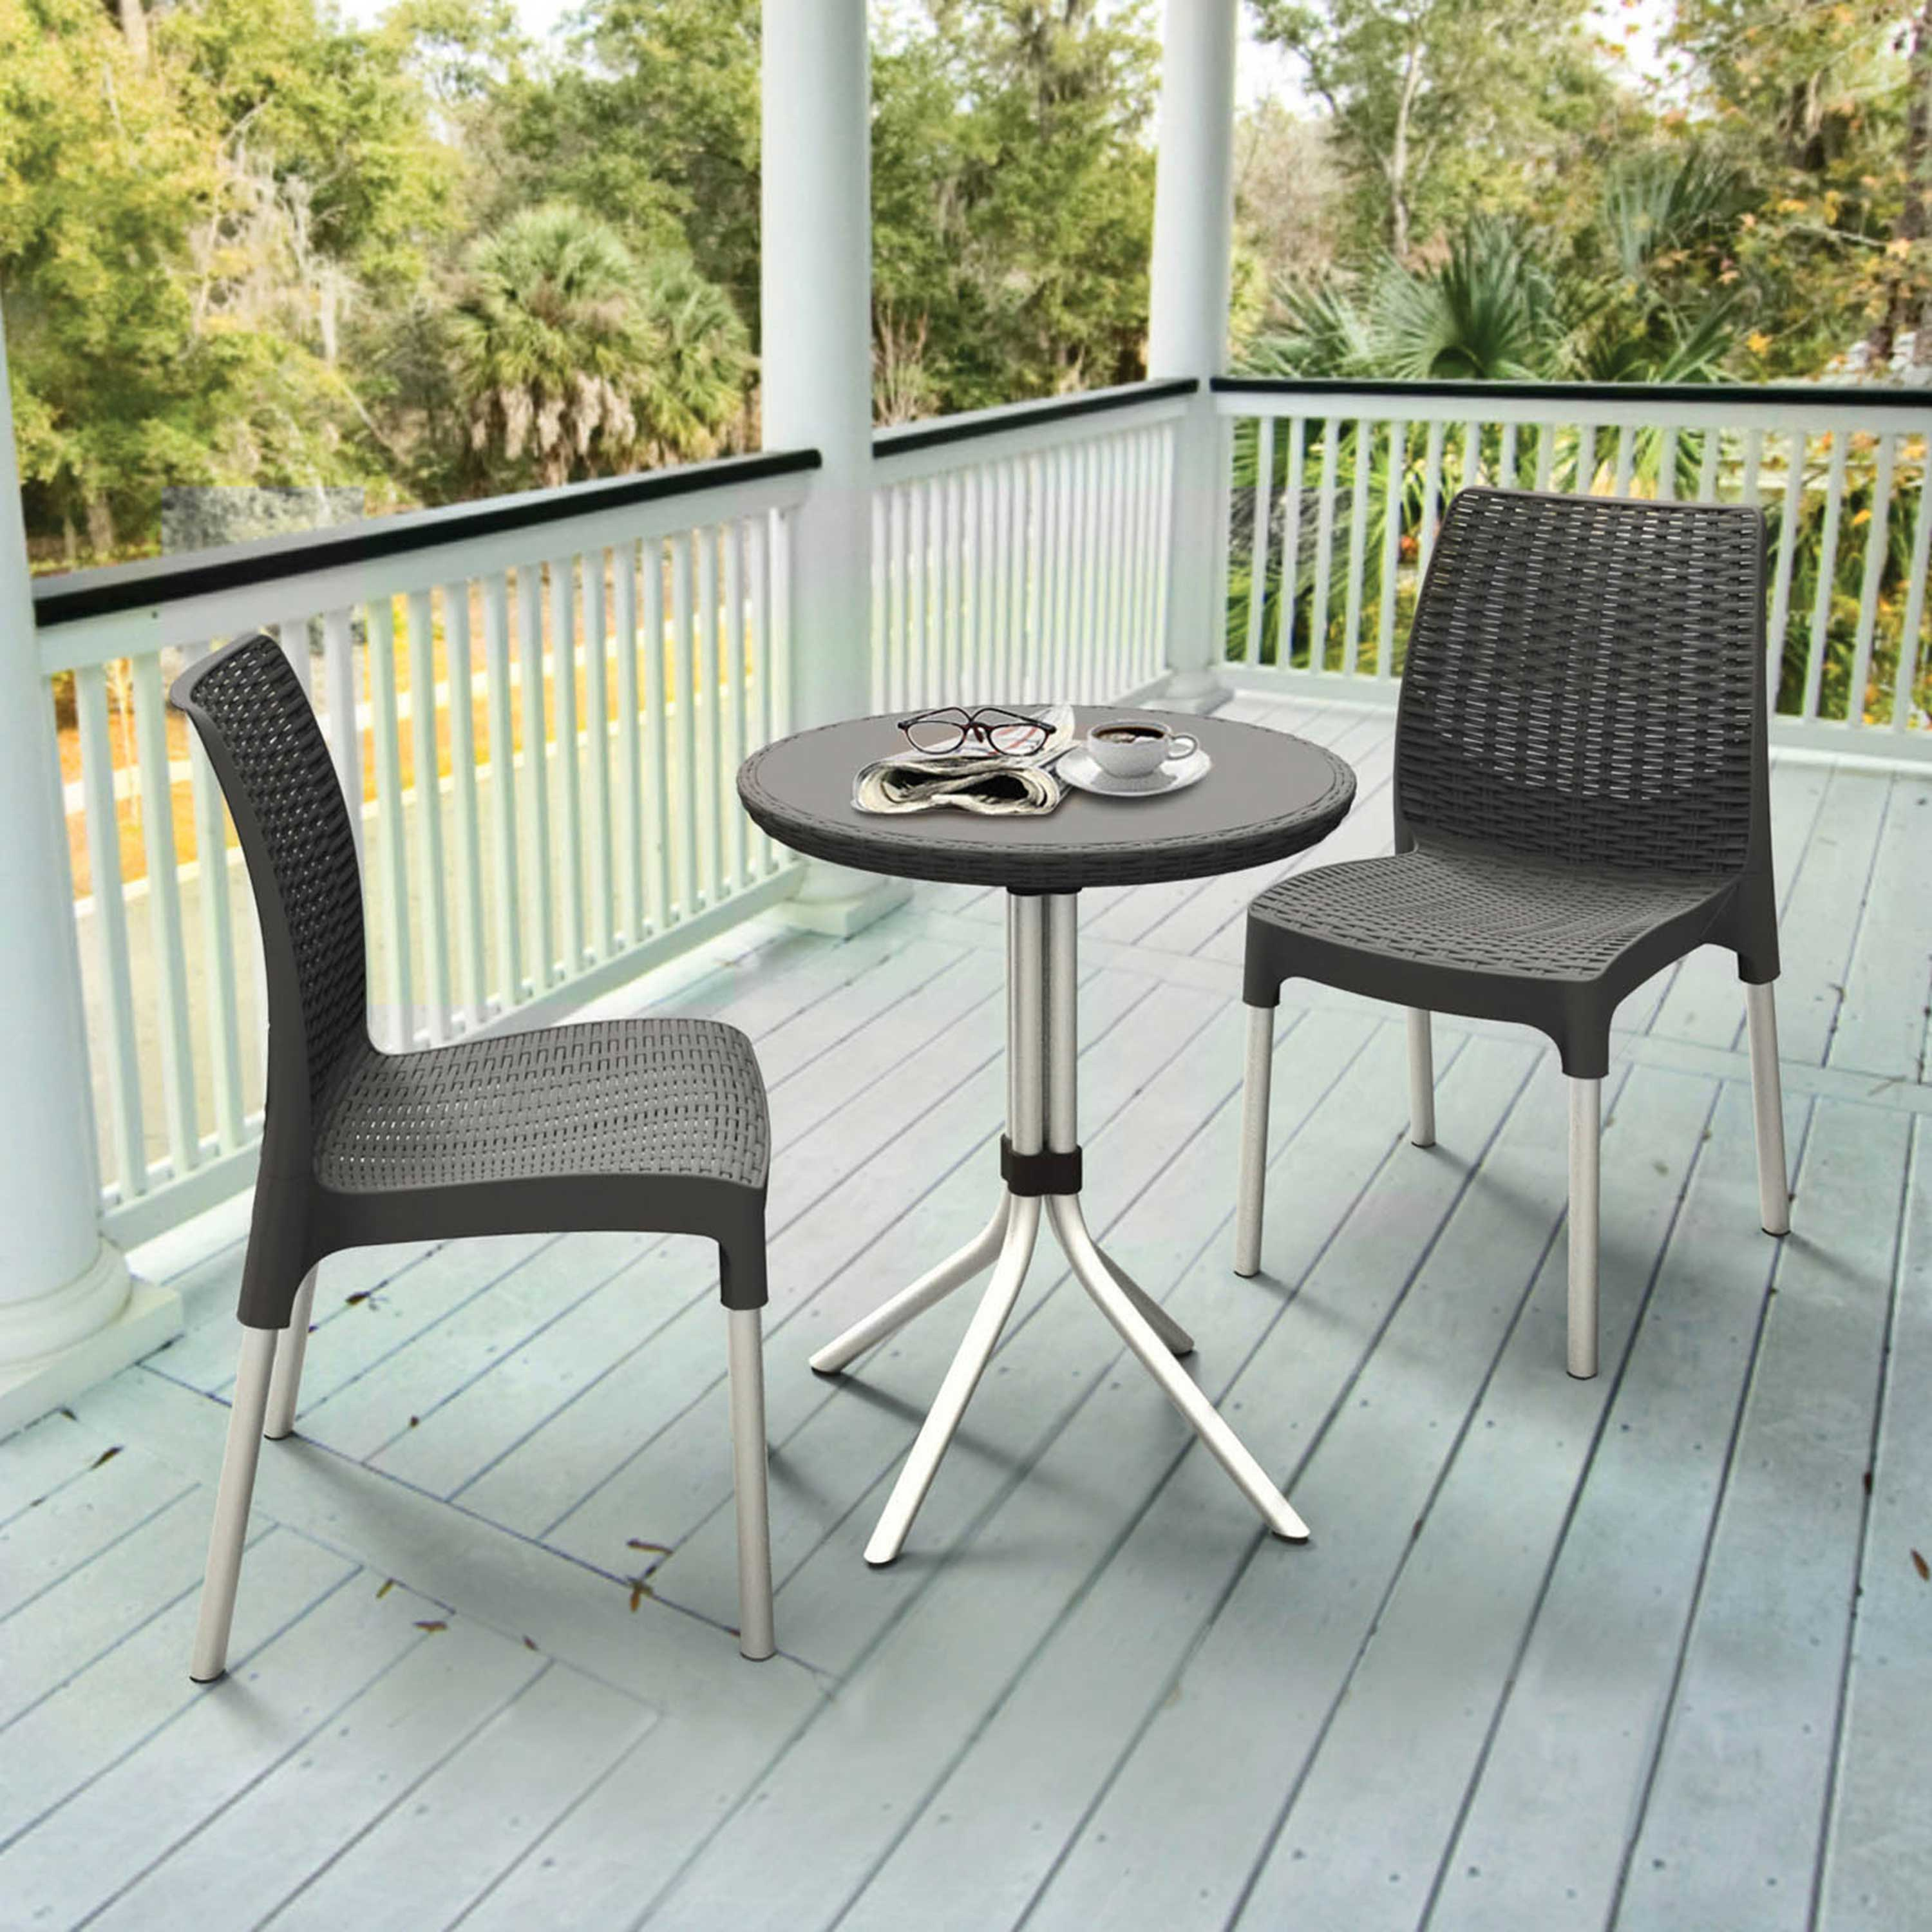 Buy cheap rattan patio set compare furniture prices for for Best deals on patio furniture sets